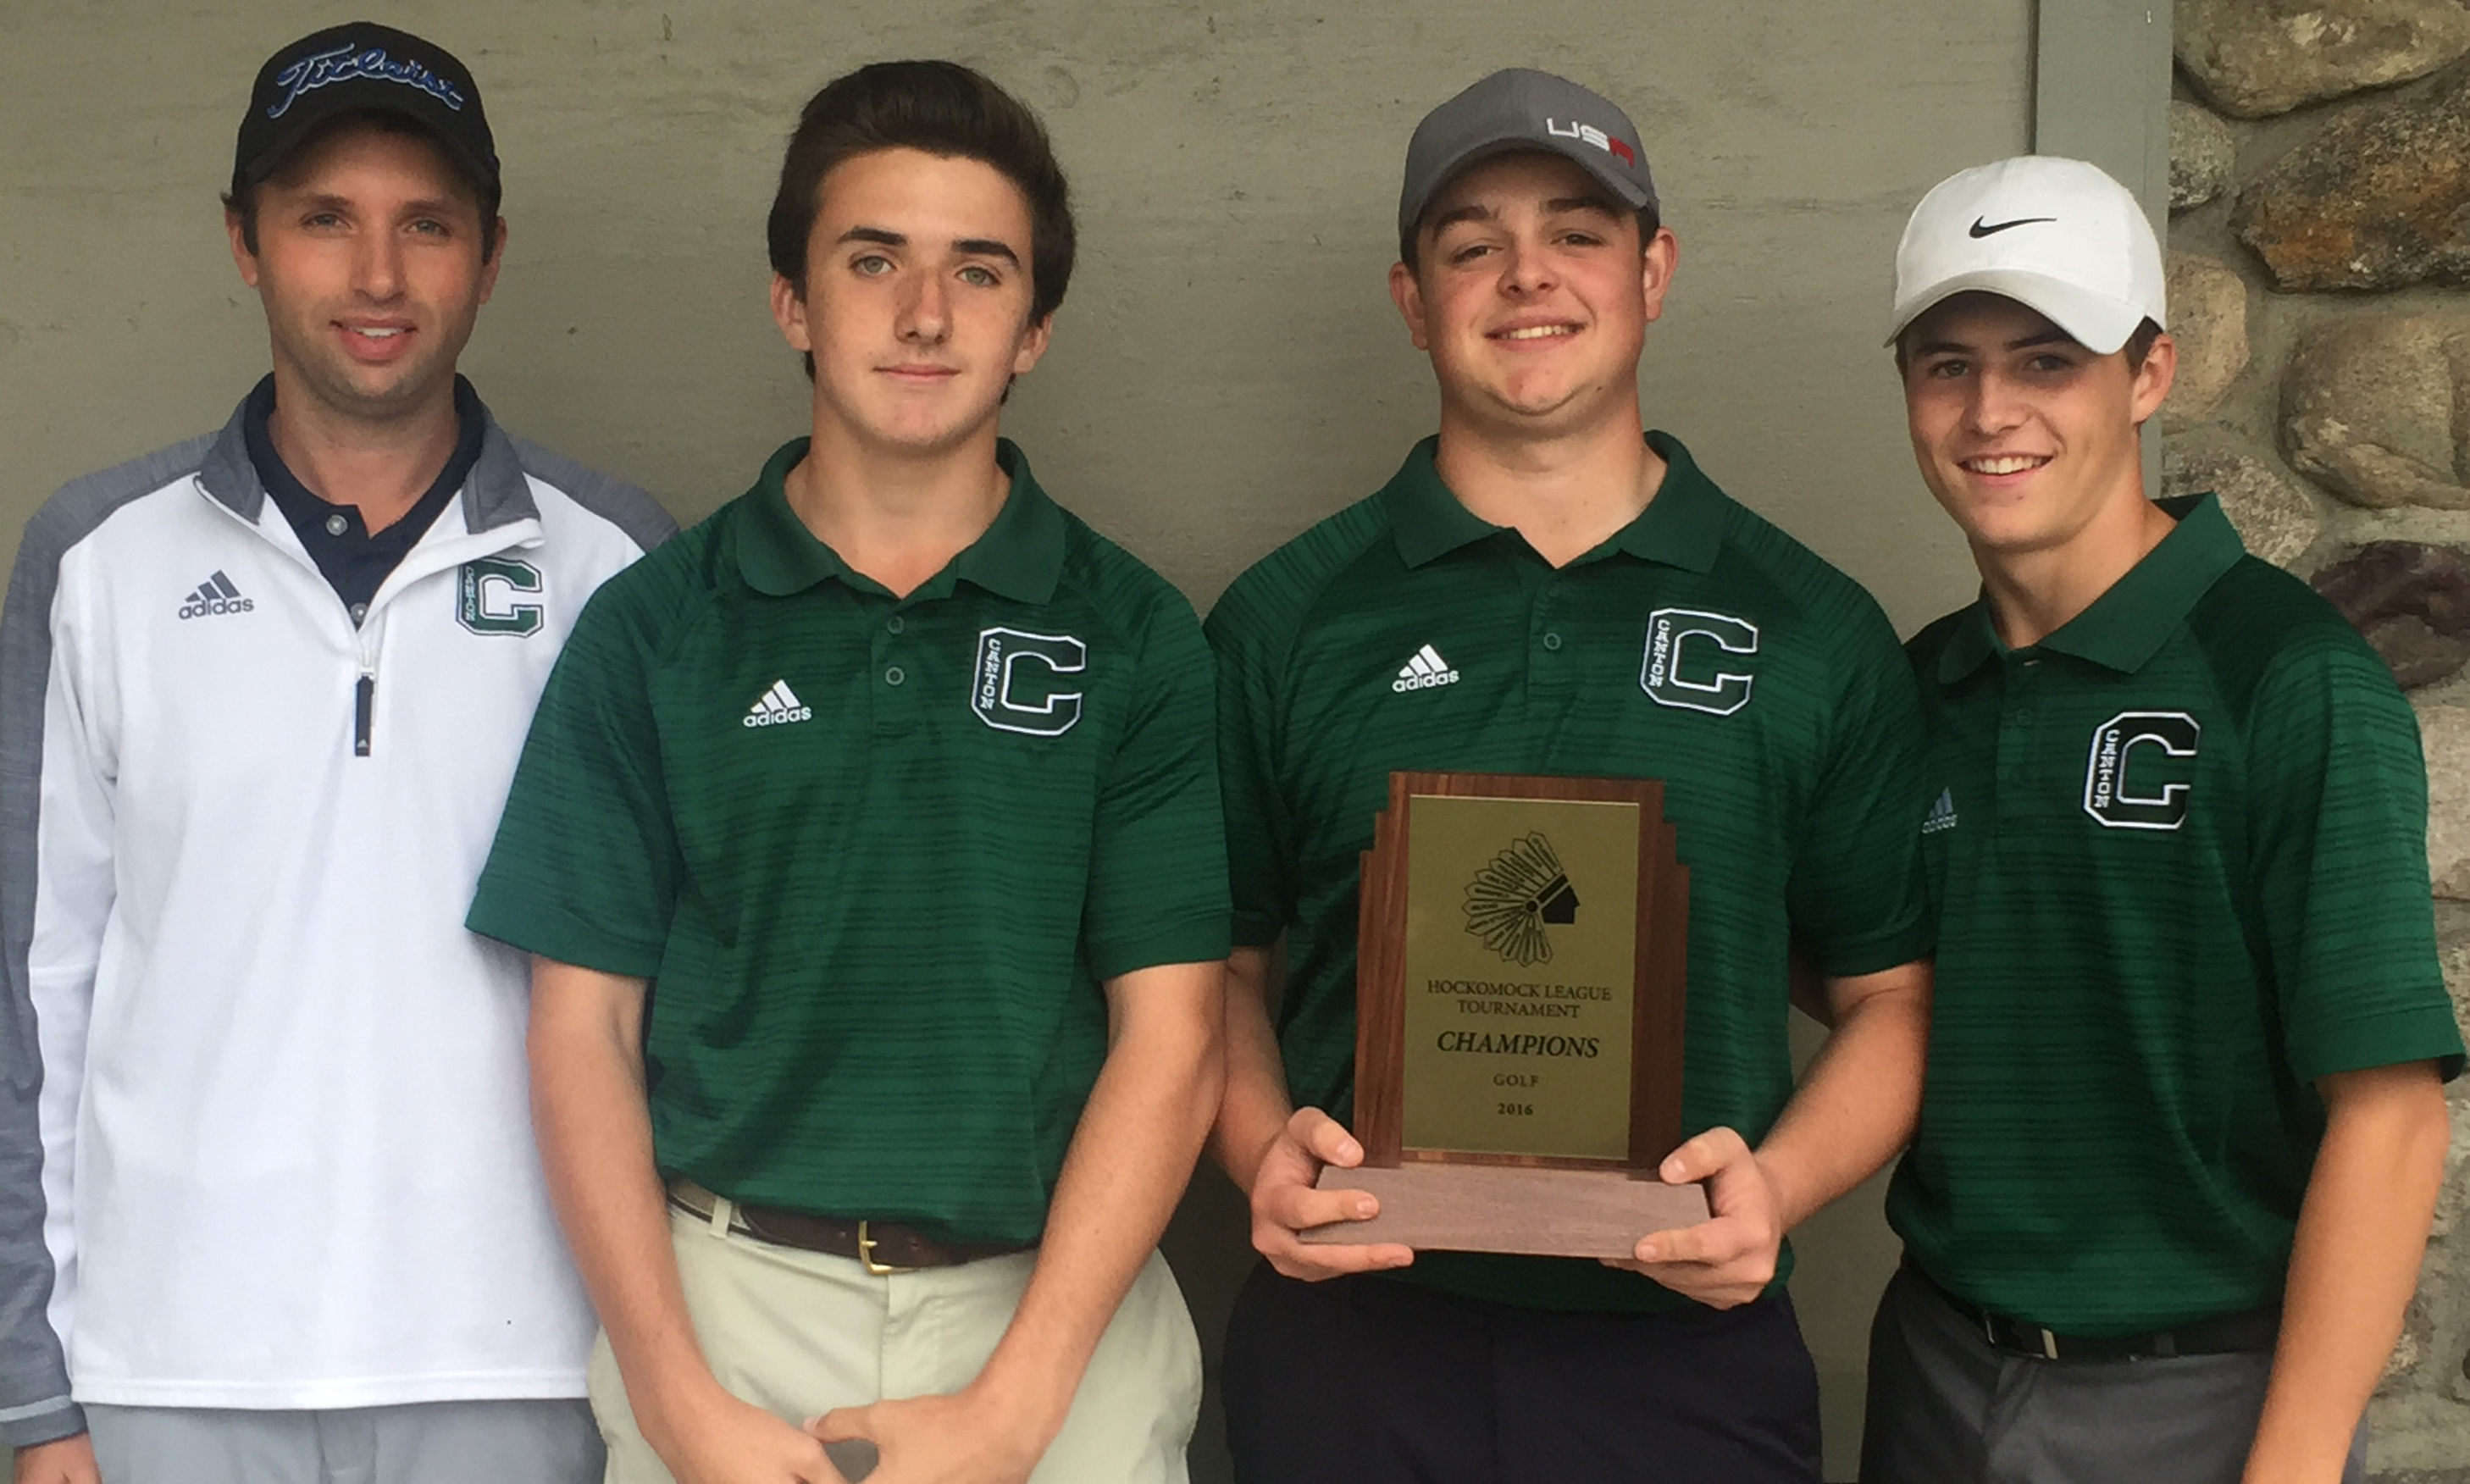 Hockomock League Golf Championship Results 2016